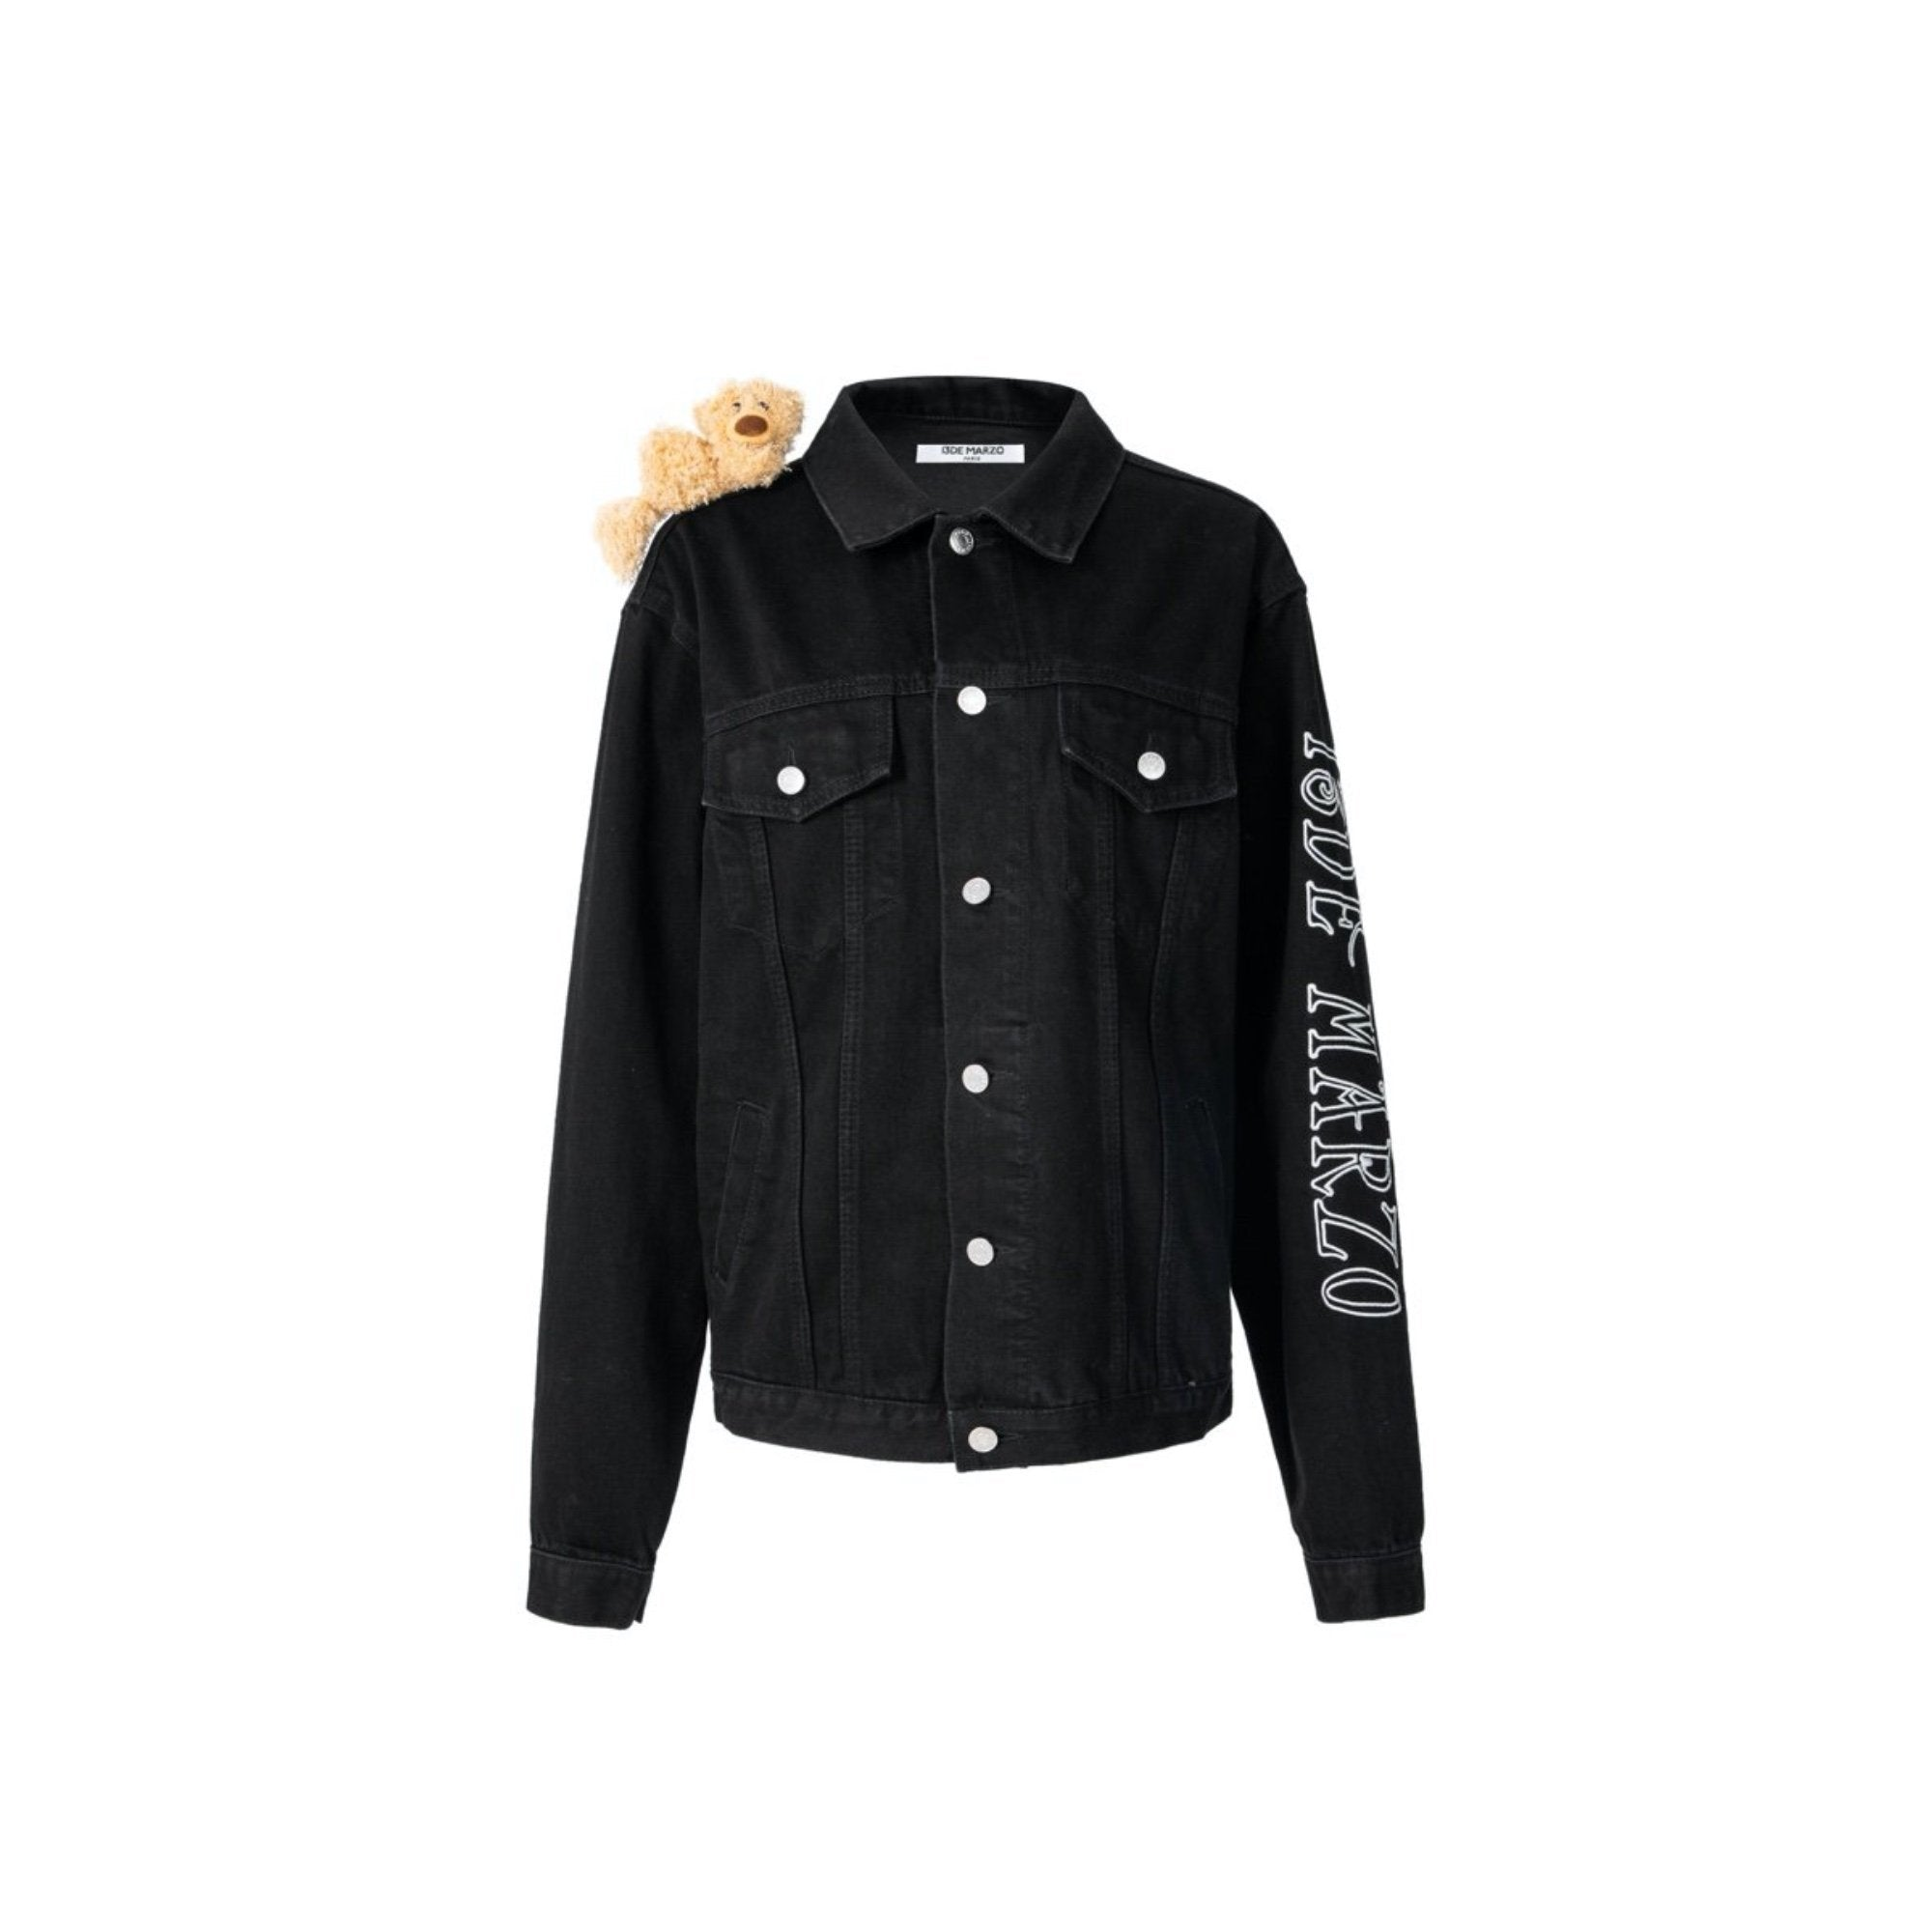 13 DE MARZO Shoulder Teddy Bear Denim Jacket Black | MADA IN CHINA